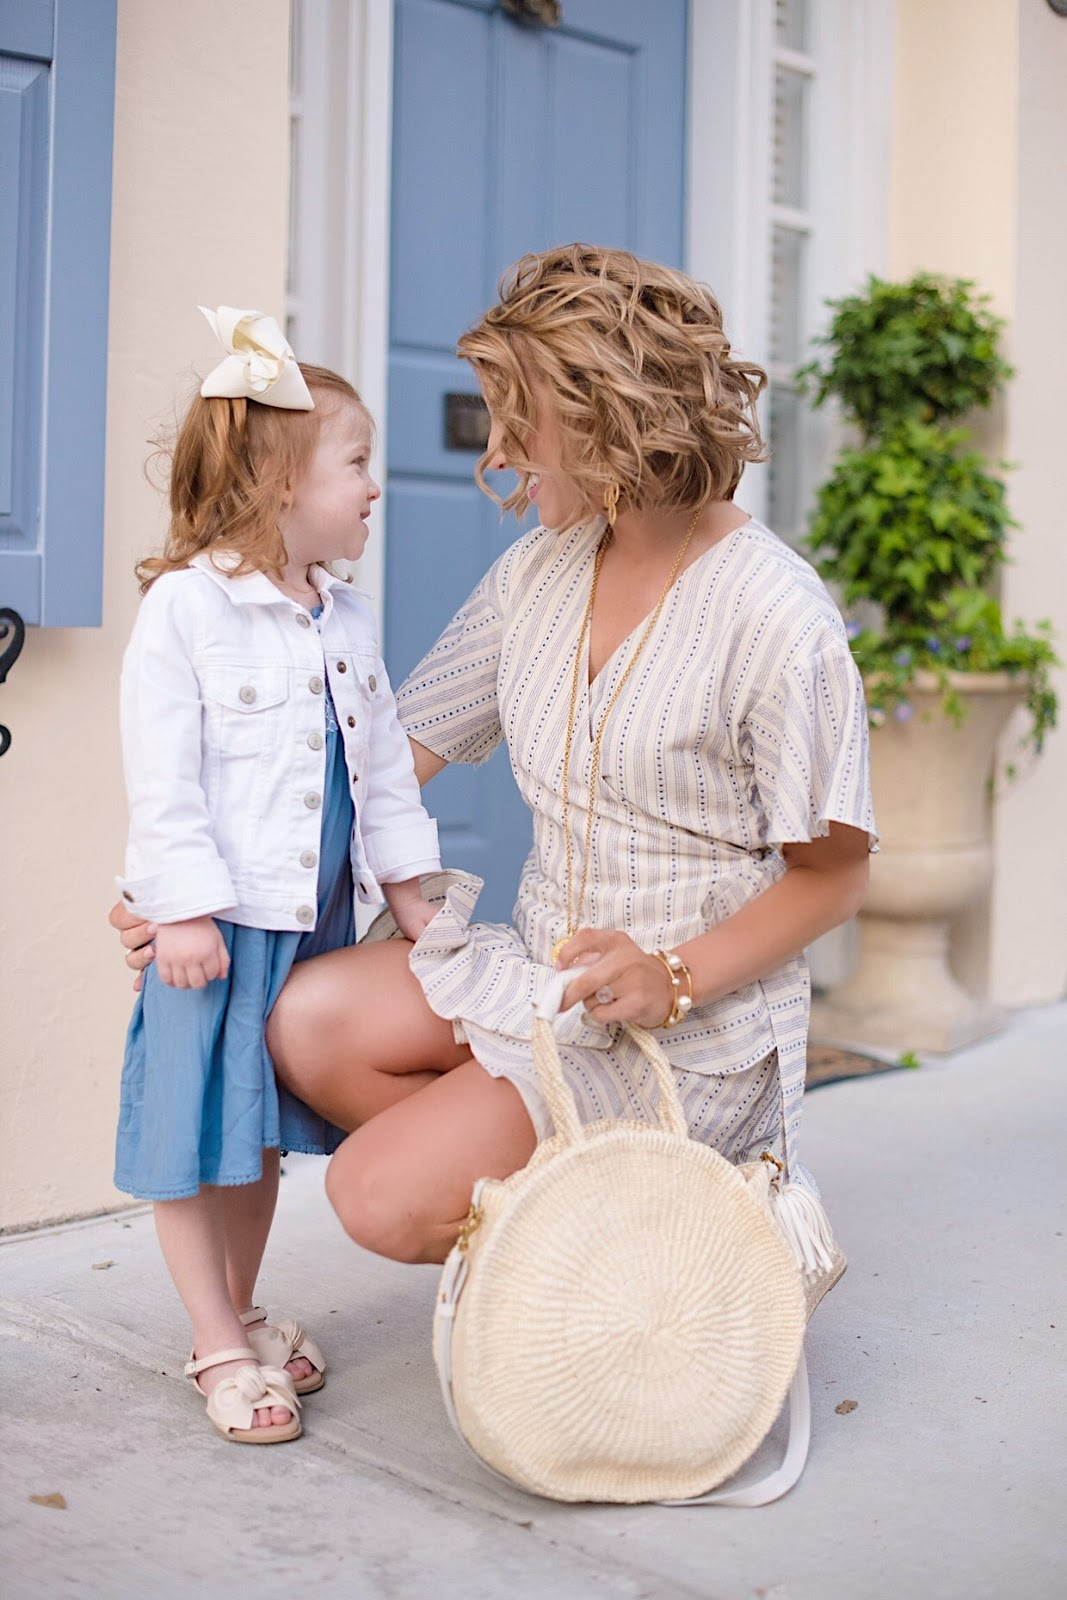 Mommy & Me Style in Charleston, SC. - Something Delightful Blog